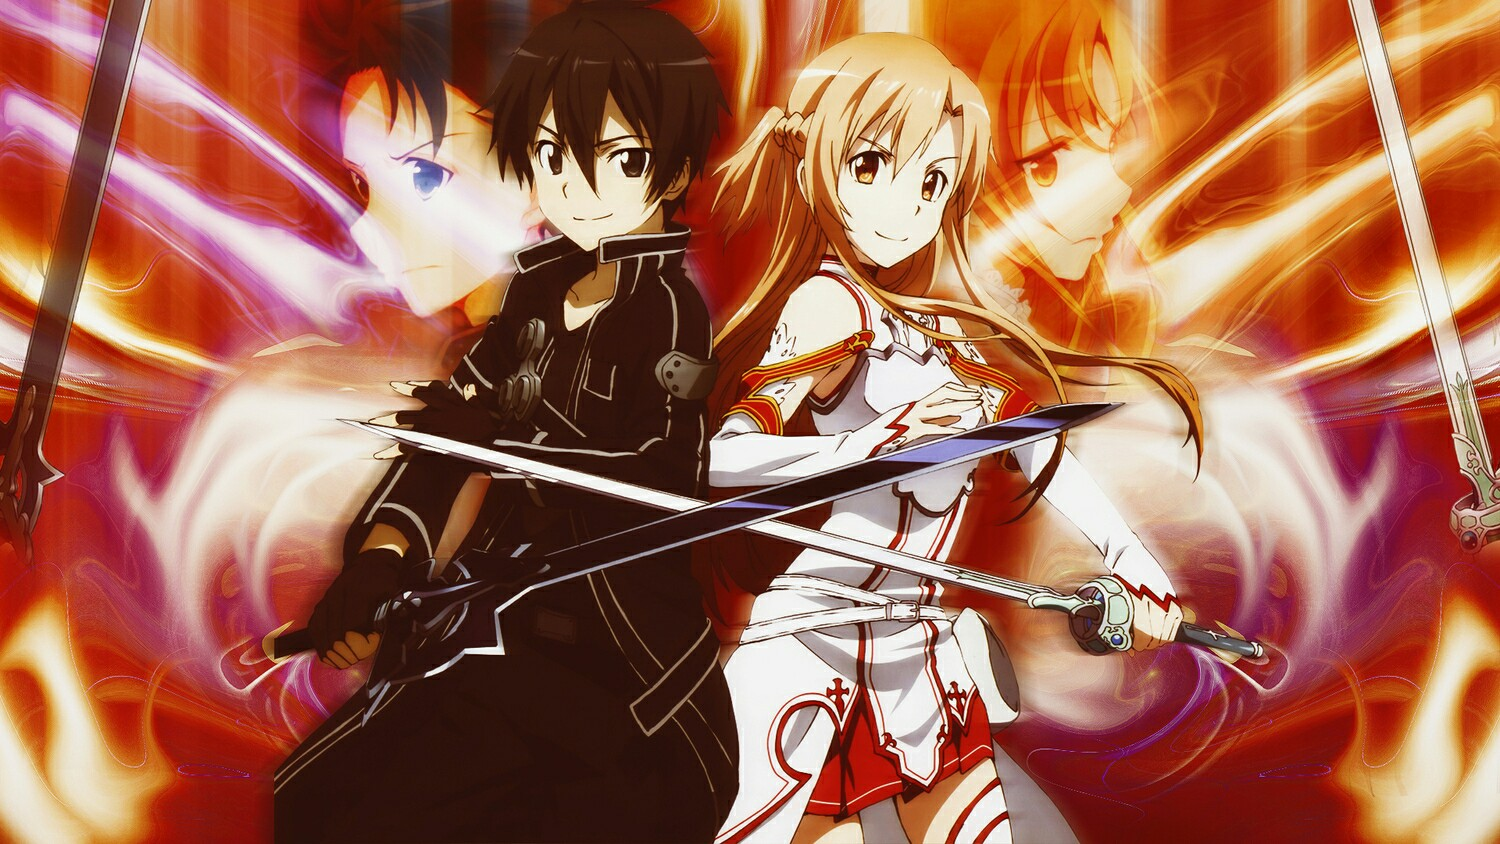 feabbcfcfec-pop-art-posters-sword-art-online-wallpaper-wp3601601